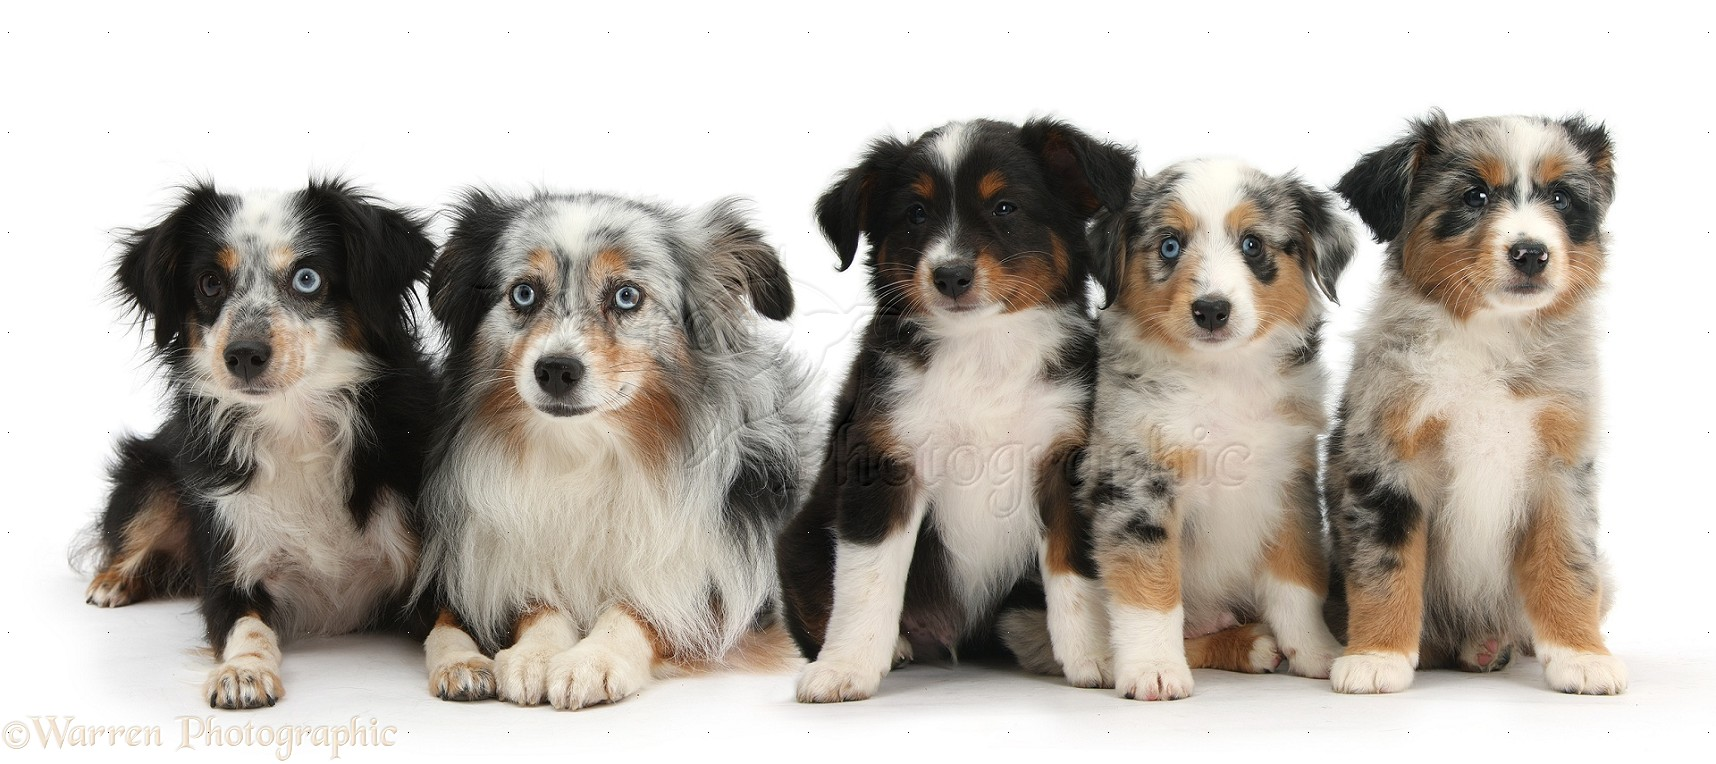 Group of Miniature American Shepard dogs photo - WP40062